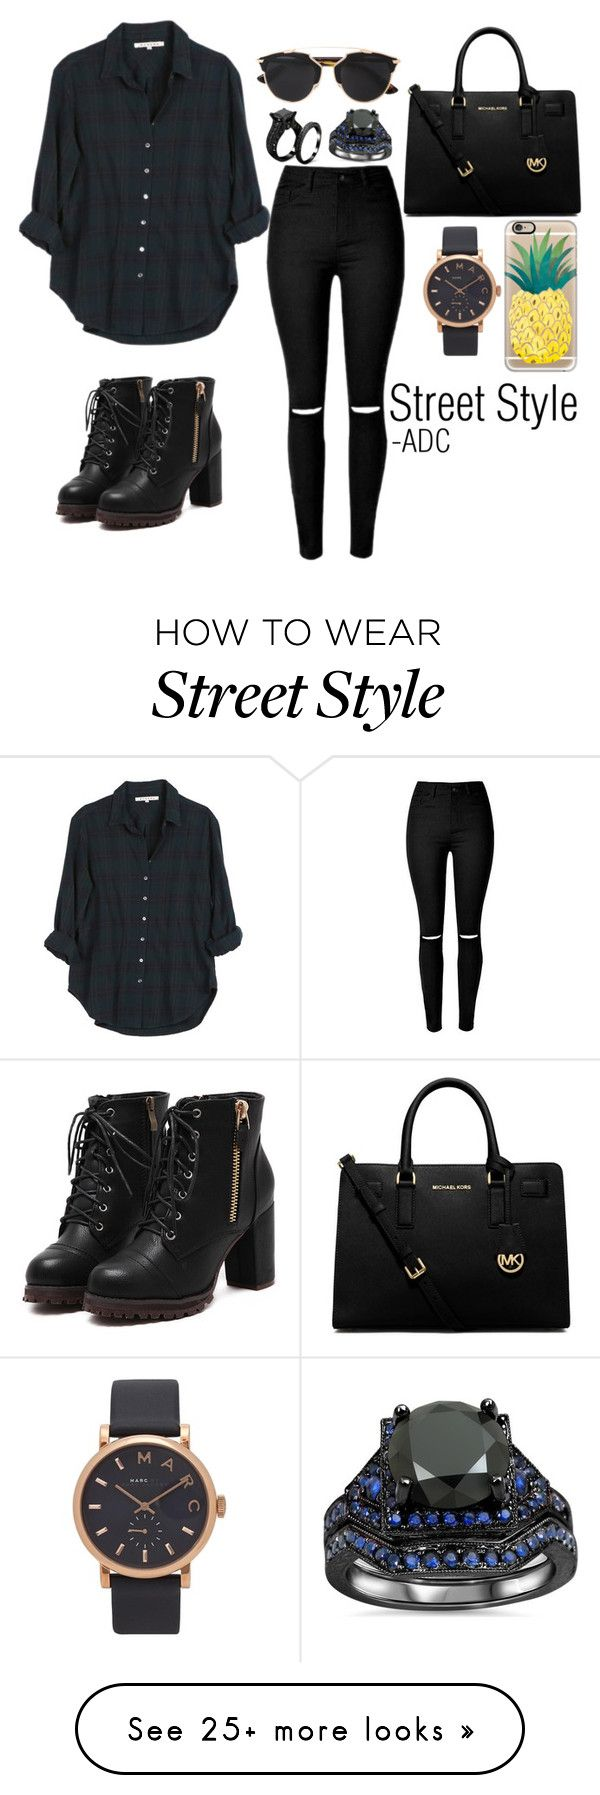 """Street Style"" by anatiller on Polyvore featuring Xirena, MICHAEL Michael Kors, Christian Dior, Casetify and Marc Jacobs"